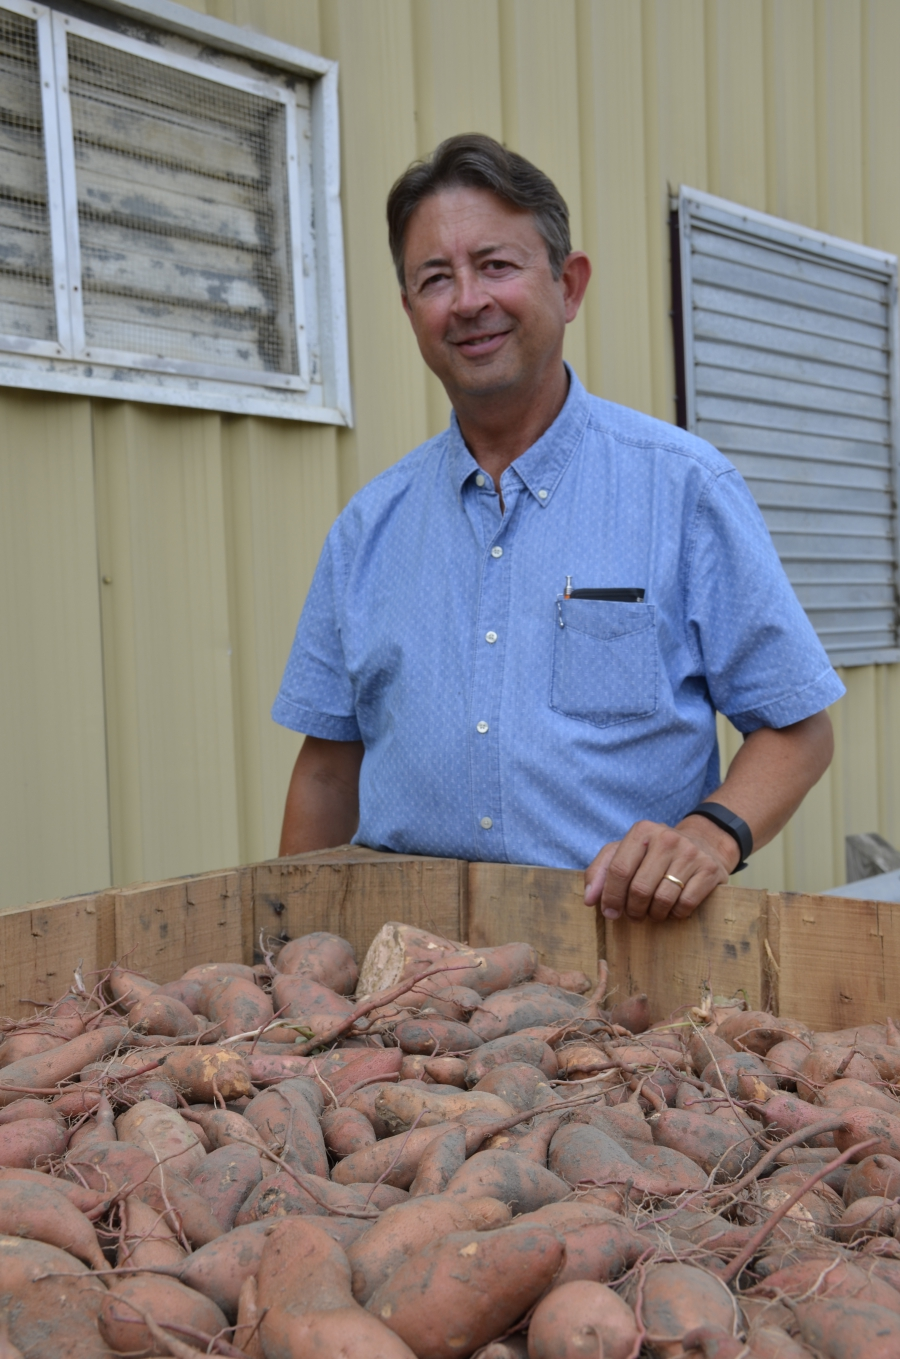 Johnny Barnes runs the largest sweet potato farm in the United States.